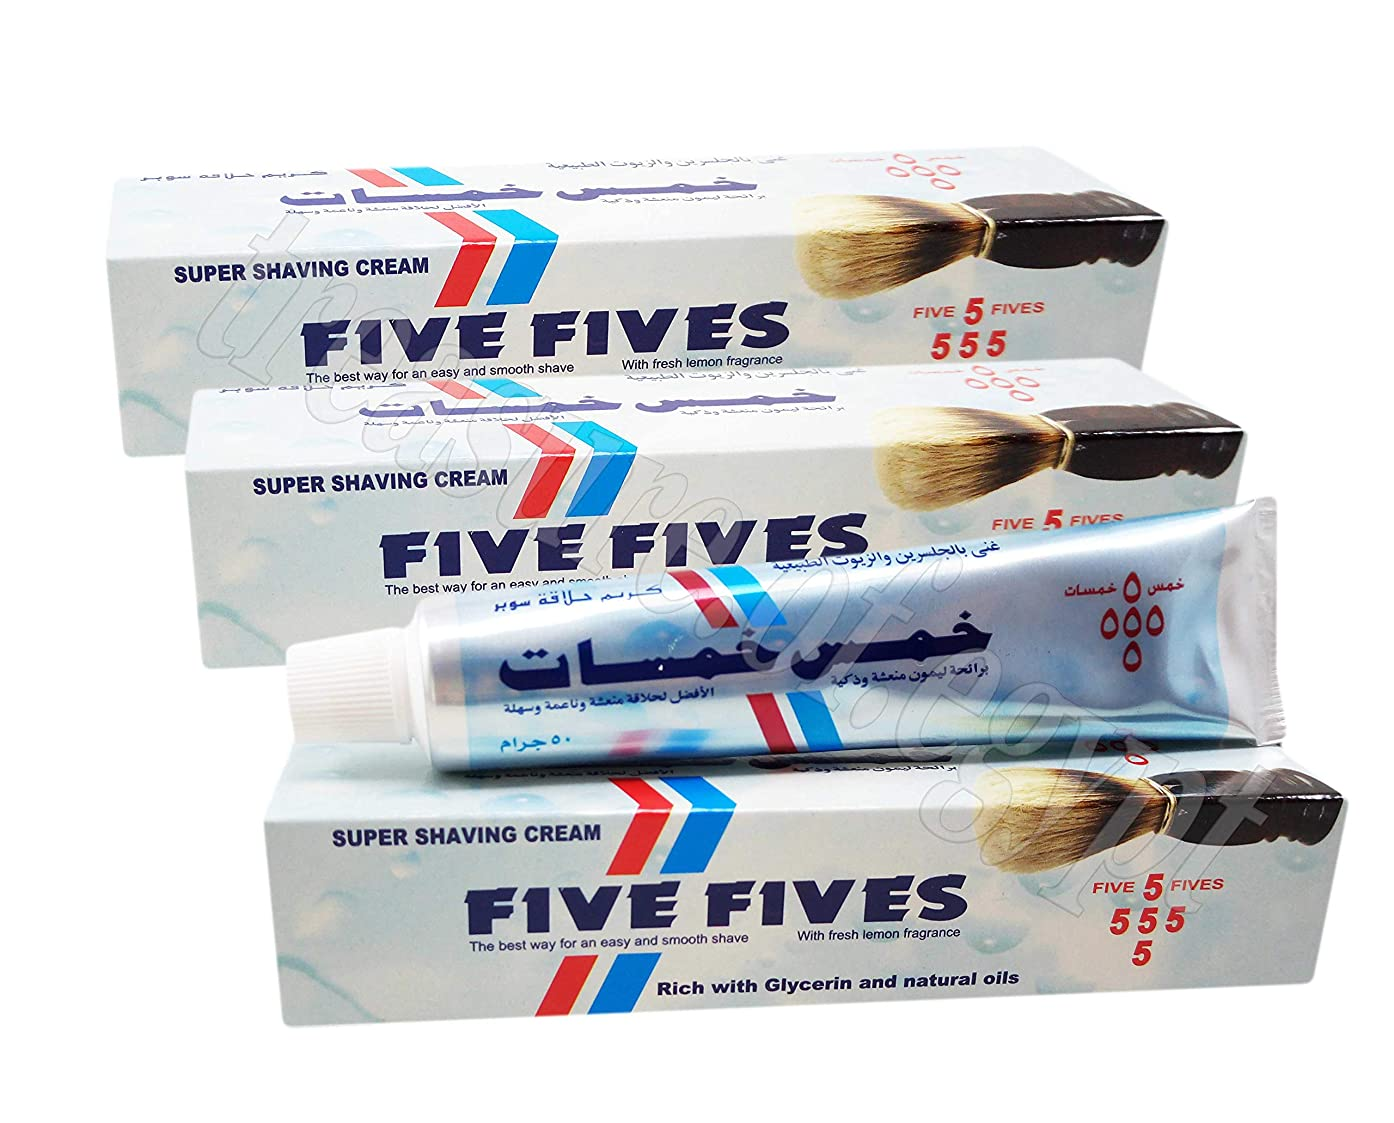 発表する旋律的弾丸Five Fives Super Shaving Cream Men Smoothing Toiletries Lather Shave Skin with Menthol & Glycerin & Coconut Oil Fresh Lemon Fragrance Tube 50 g (3 Packs / 150 g)